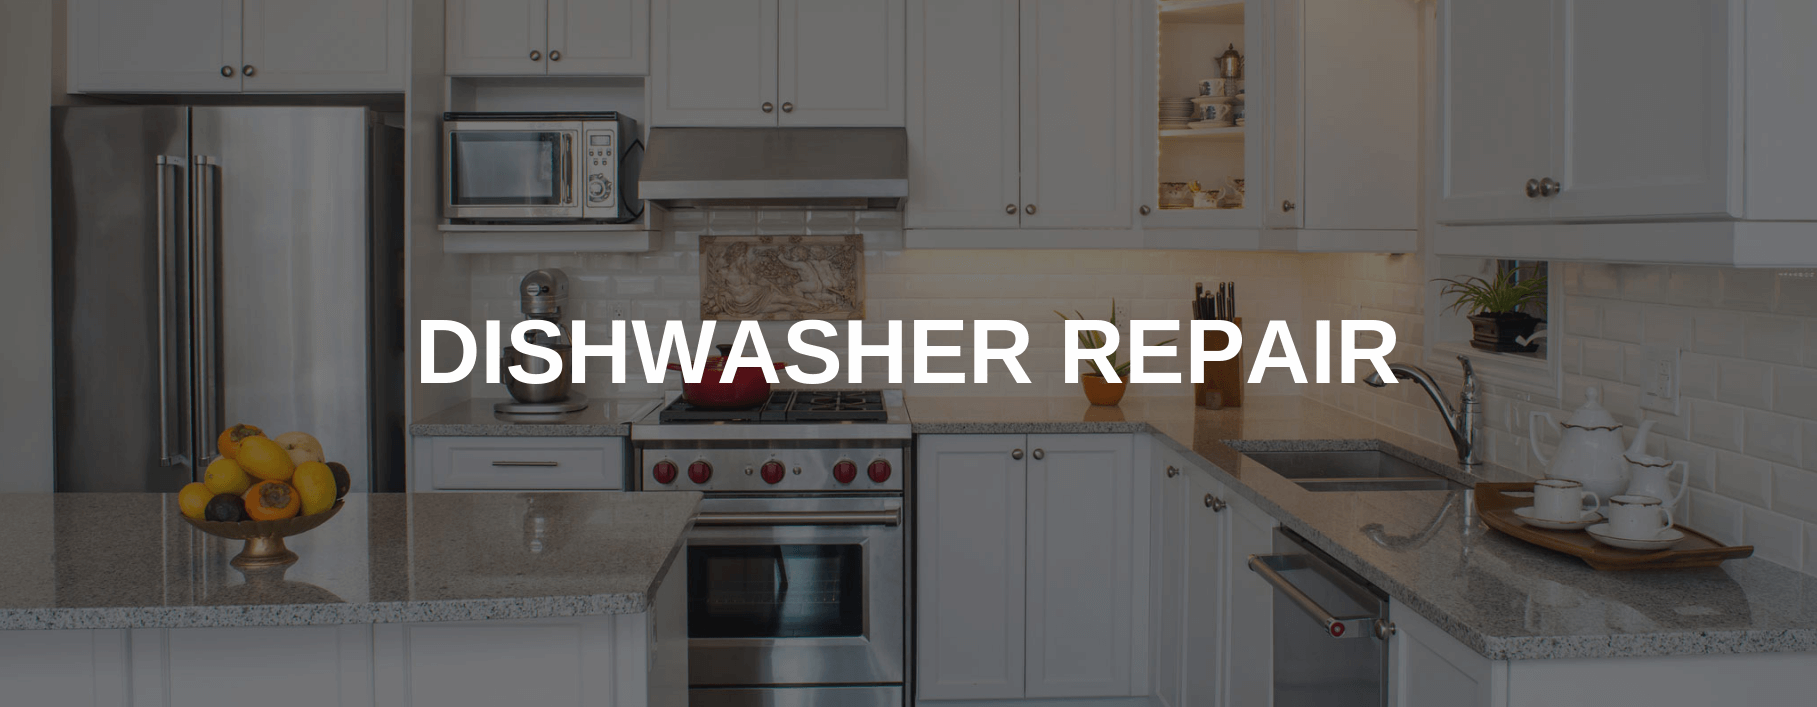 dishwasher repair eugene or